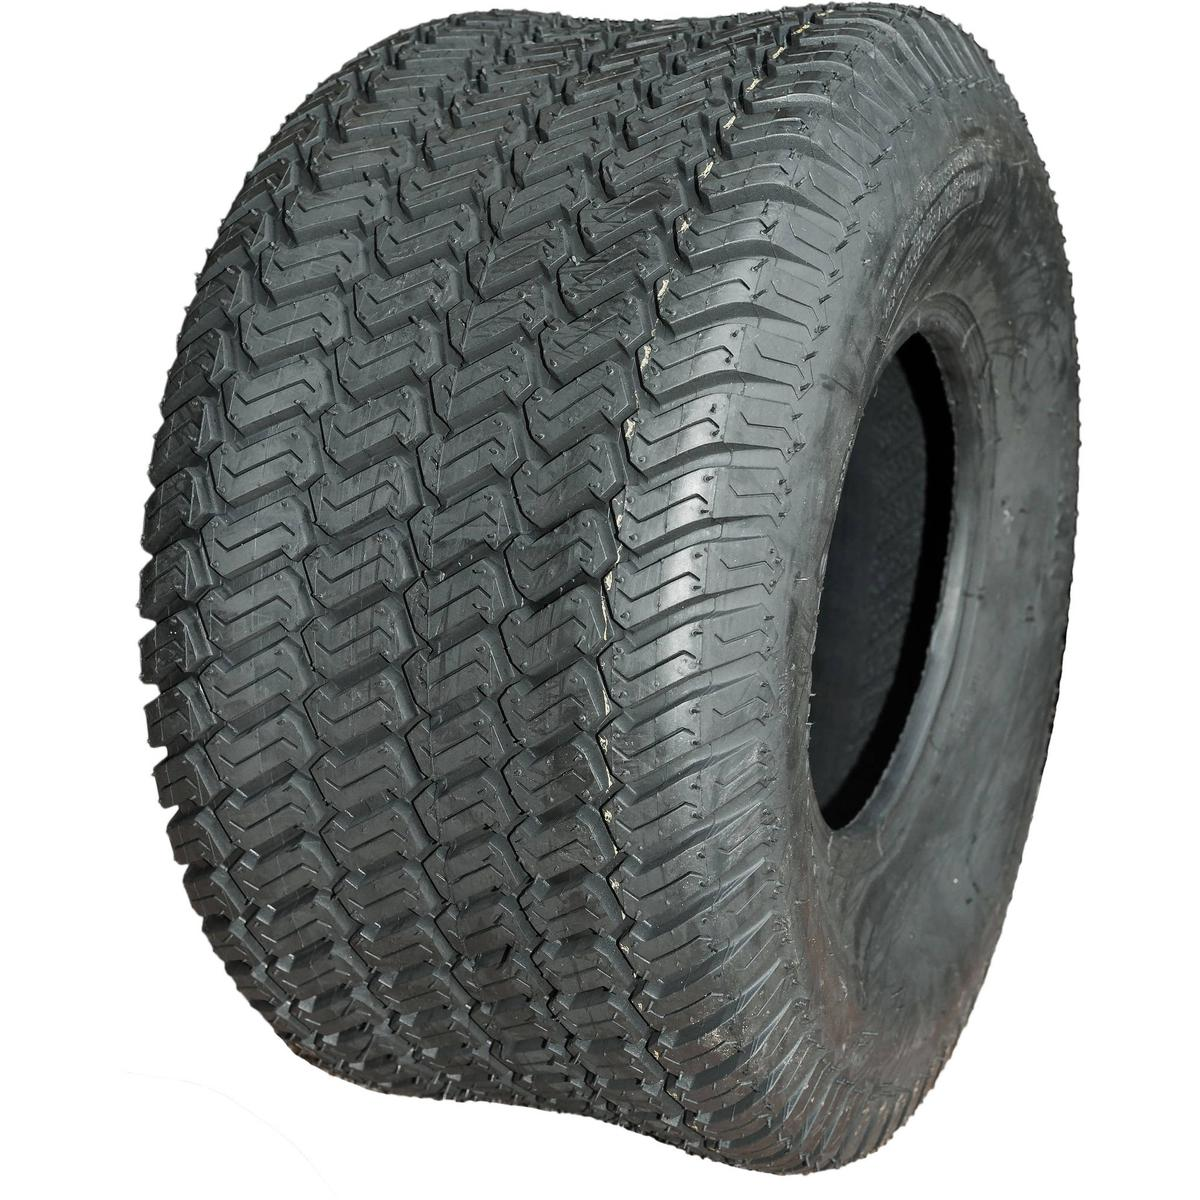 Hi-Run SU05 15-6.50-8 4 Ply Yard - Lawn Tire